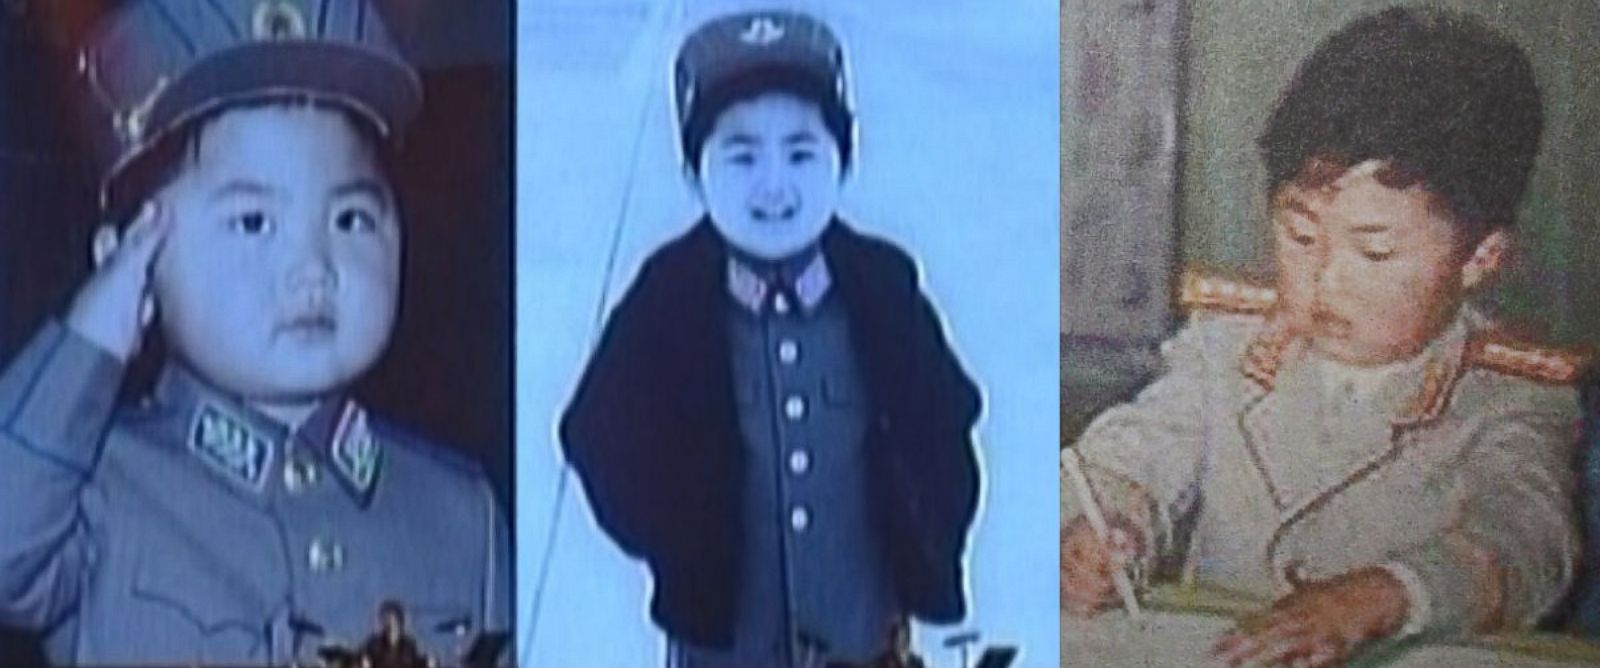 PHOTO: Undated handout pictures showing North Korean leader Kim Jong-un as a child were released by the North Korean Central Television (KCTV) and made available during KCTVs coverage of Moranbong Bands performance, April 21, 2014 show.